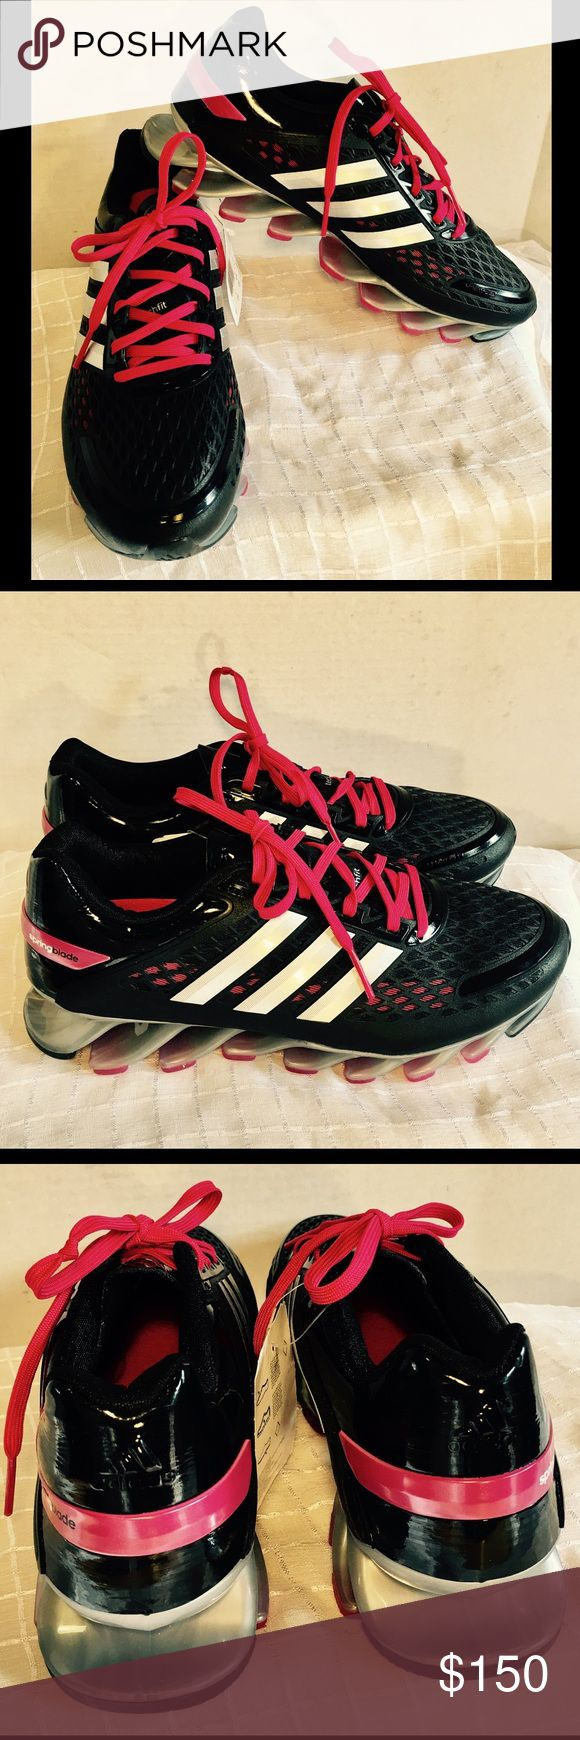 NEW! ADIDAS SPRINGBLADE RAZOR SNEAKERS SIZE 8 1/2 DESIGNER-ADIDAS.                                                STYLE--RAZOR SPRINGBLADE.                             BRAND NEW.                                                               SIZE --8 1/2.                                                             COMES WITH ADDITIONAL BLACK SHOESTRINGS.                                                           SOLE--POLYMER BLADE SOLES.                             EVA CUSHIONED SOLE Adidas…